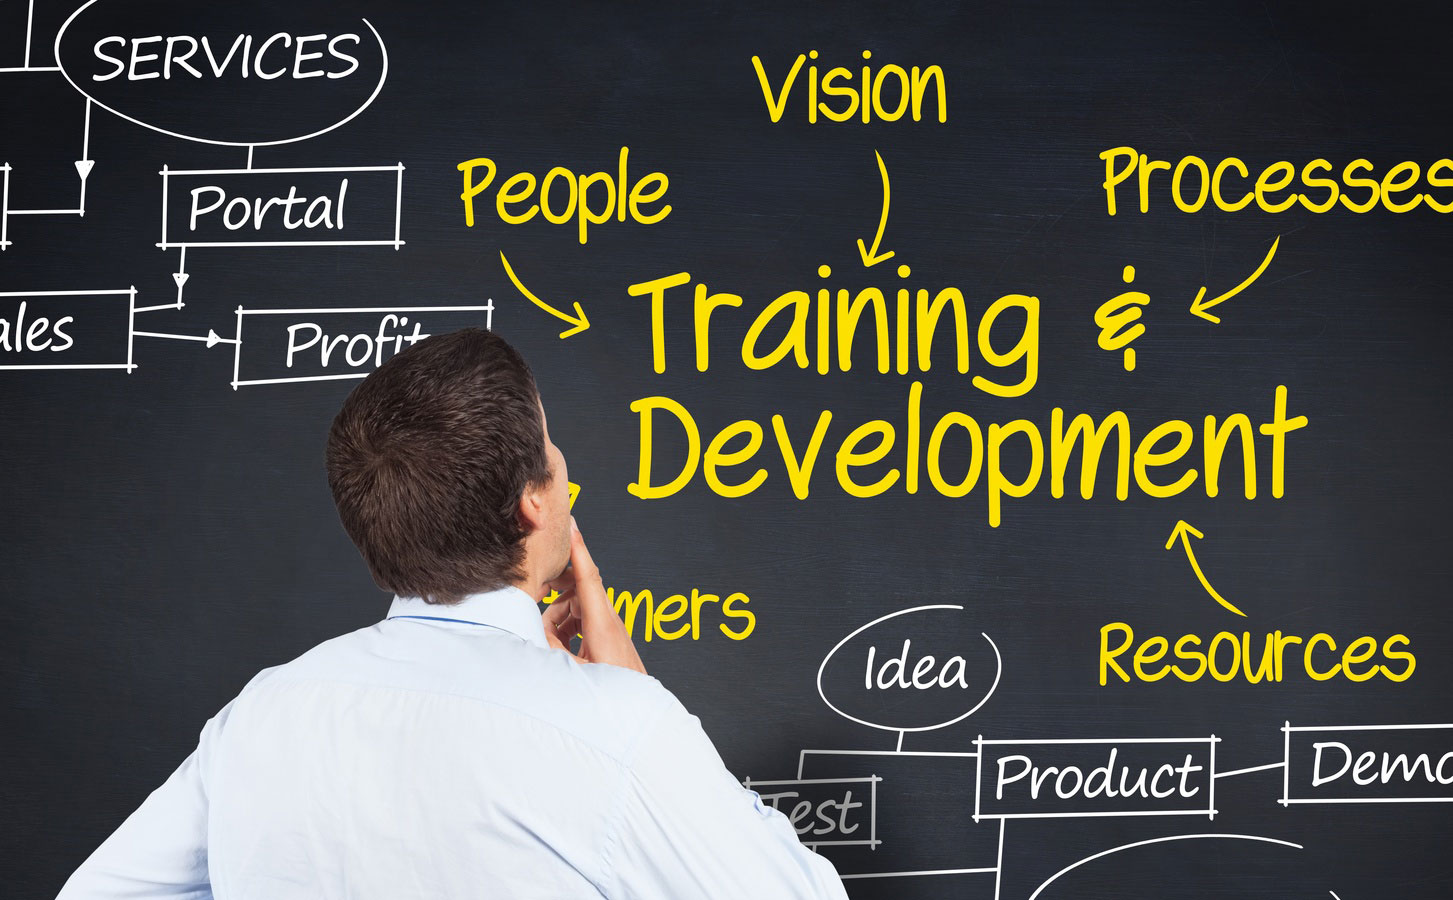 training and development program Training and development managers typically supervise a staff of training and development specialists, such as instructional designers, program developers, and instructors managers teach training methods to specialists who, in turn, instruct the organization's employees—both new and experienced.